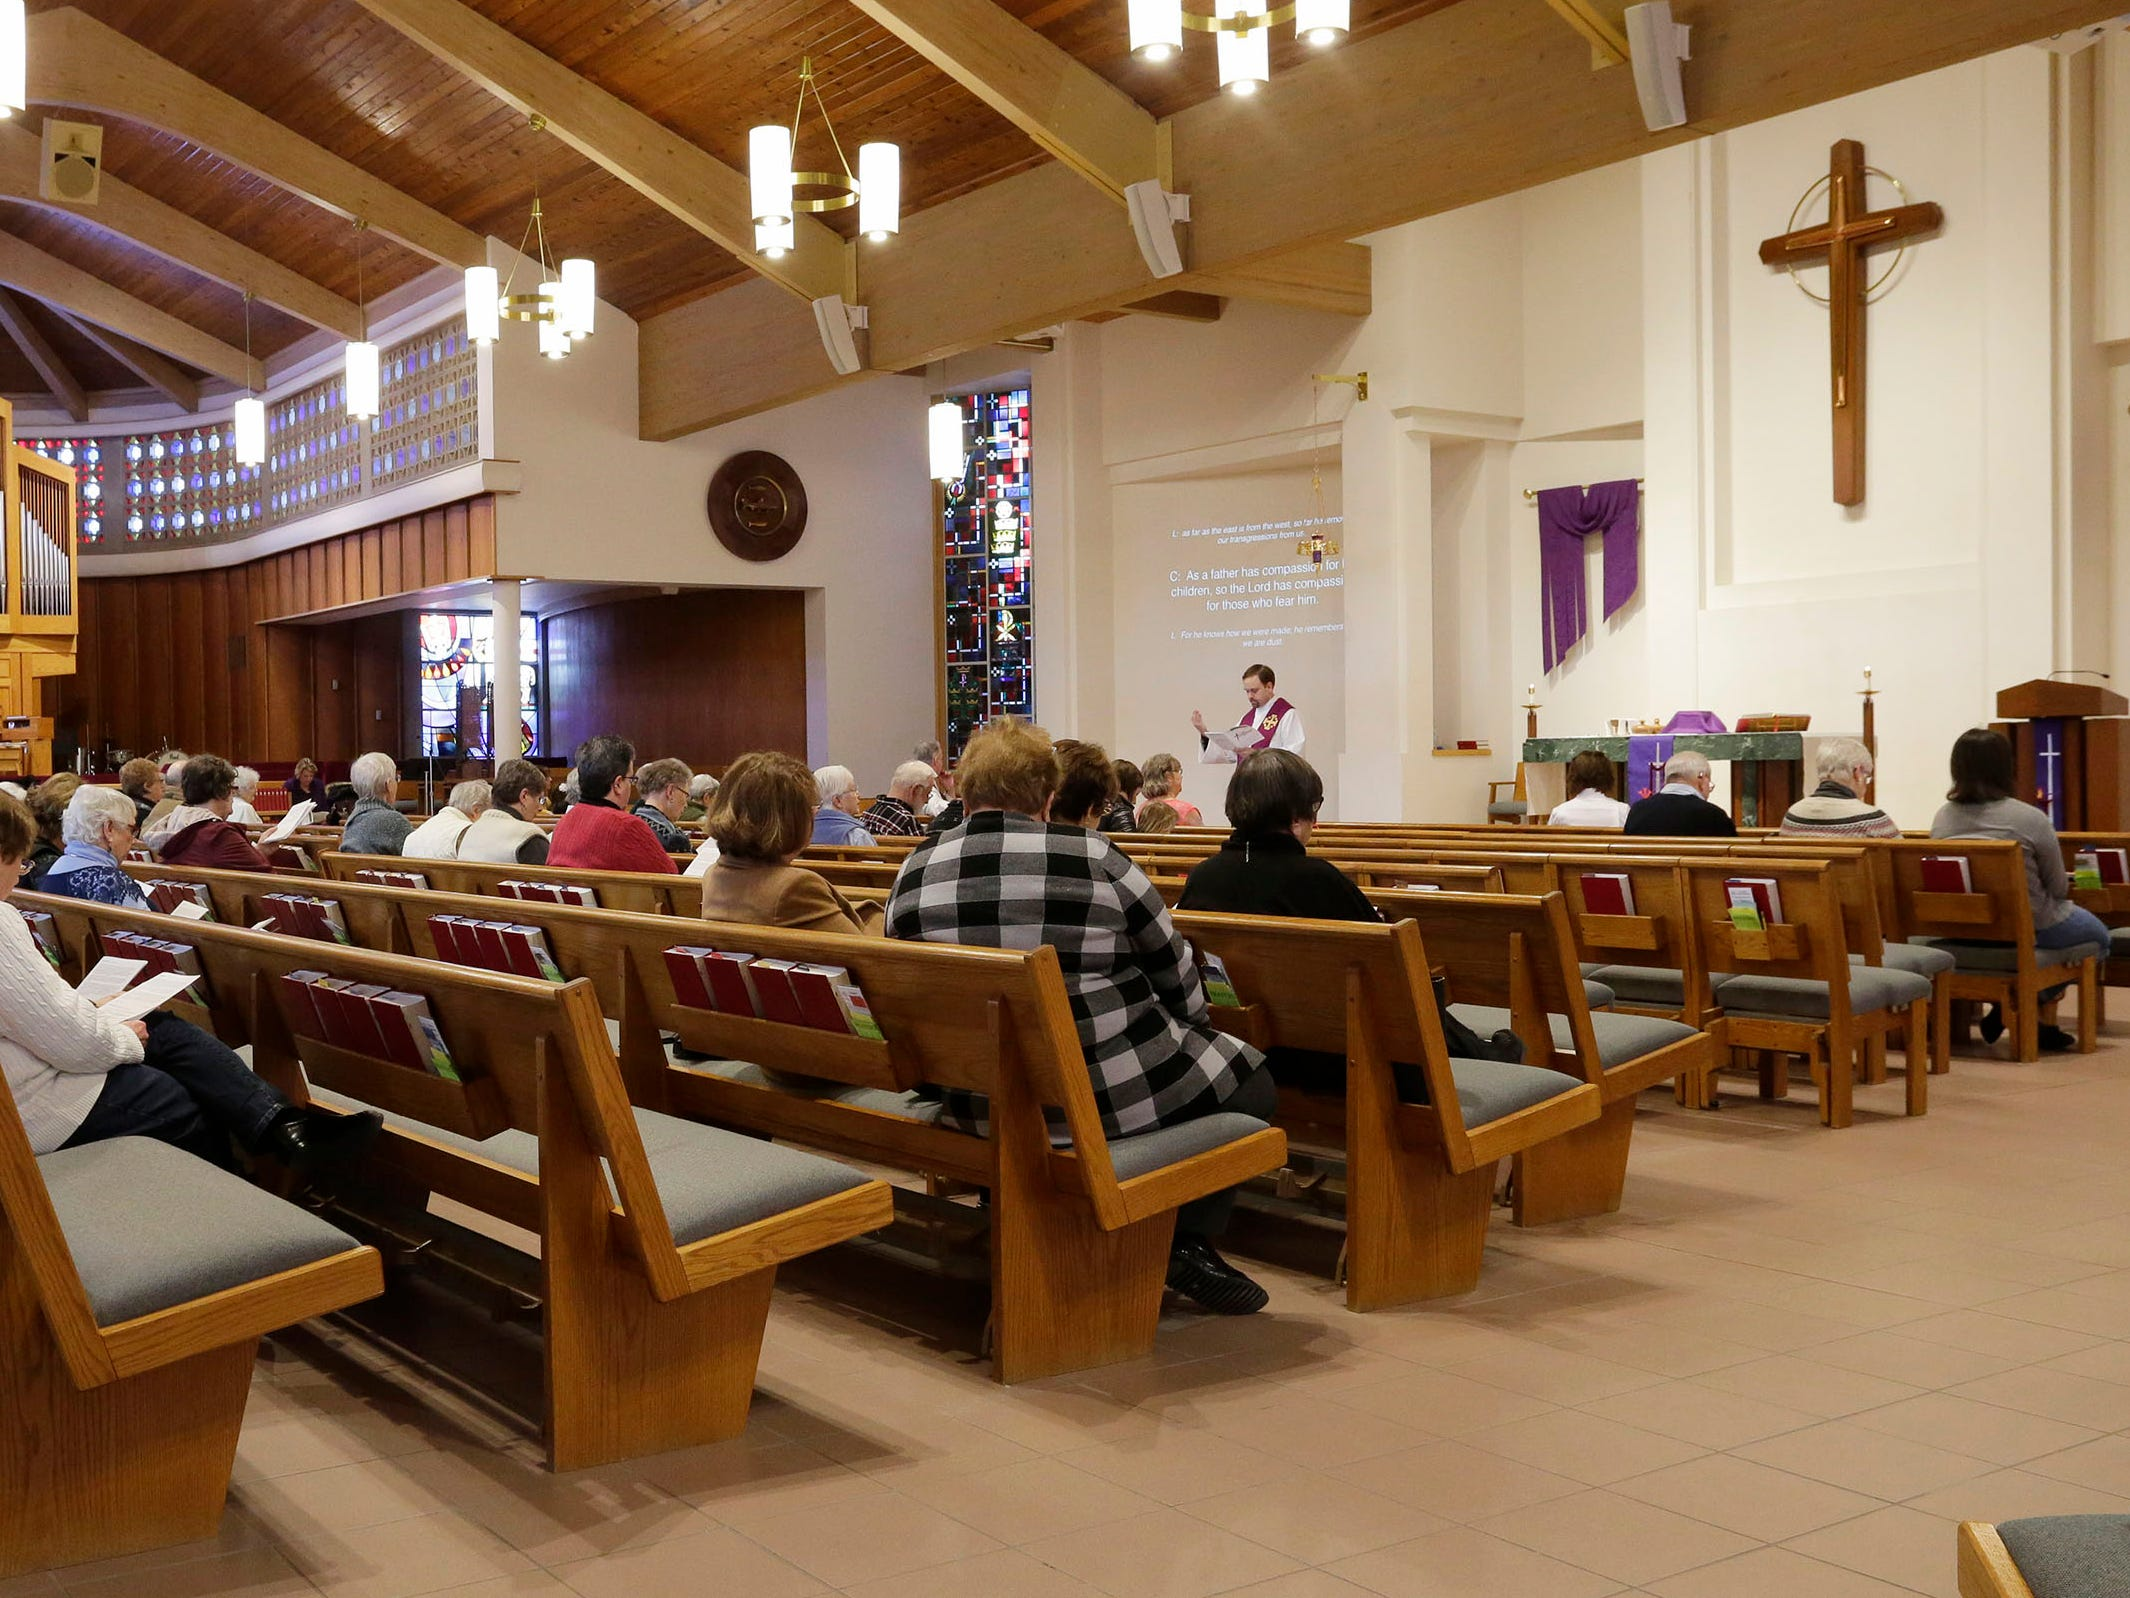 An overall of Ash Wednesday services at First United Lutheran Church, Wednesday, March 6, 2019, in Sheboygan, Wis.